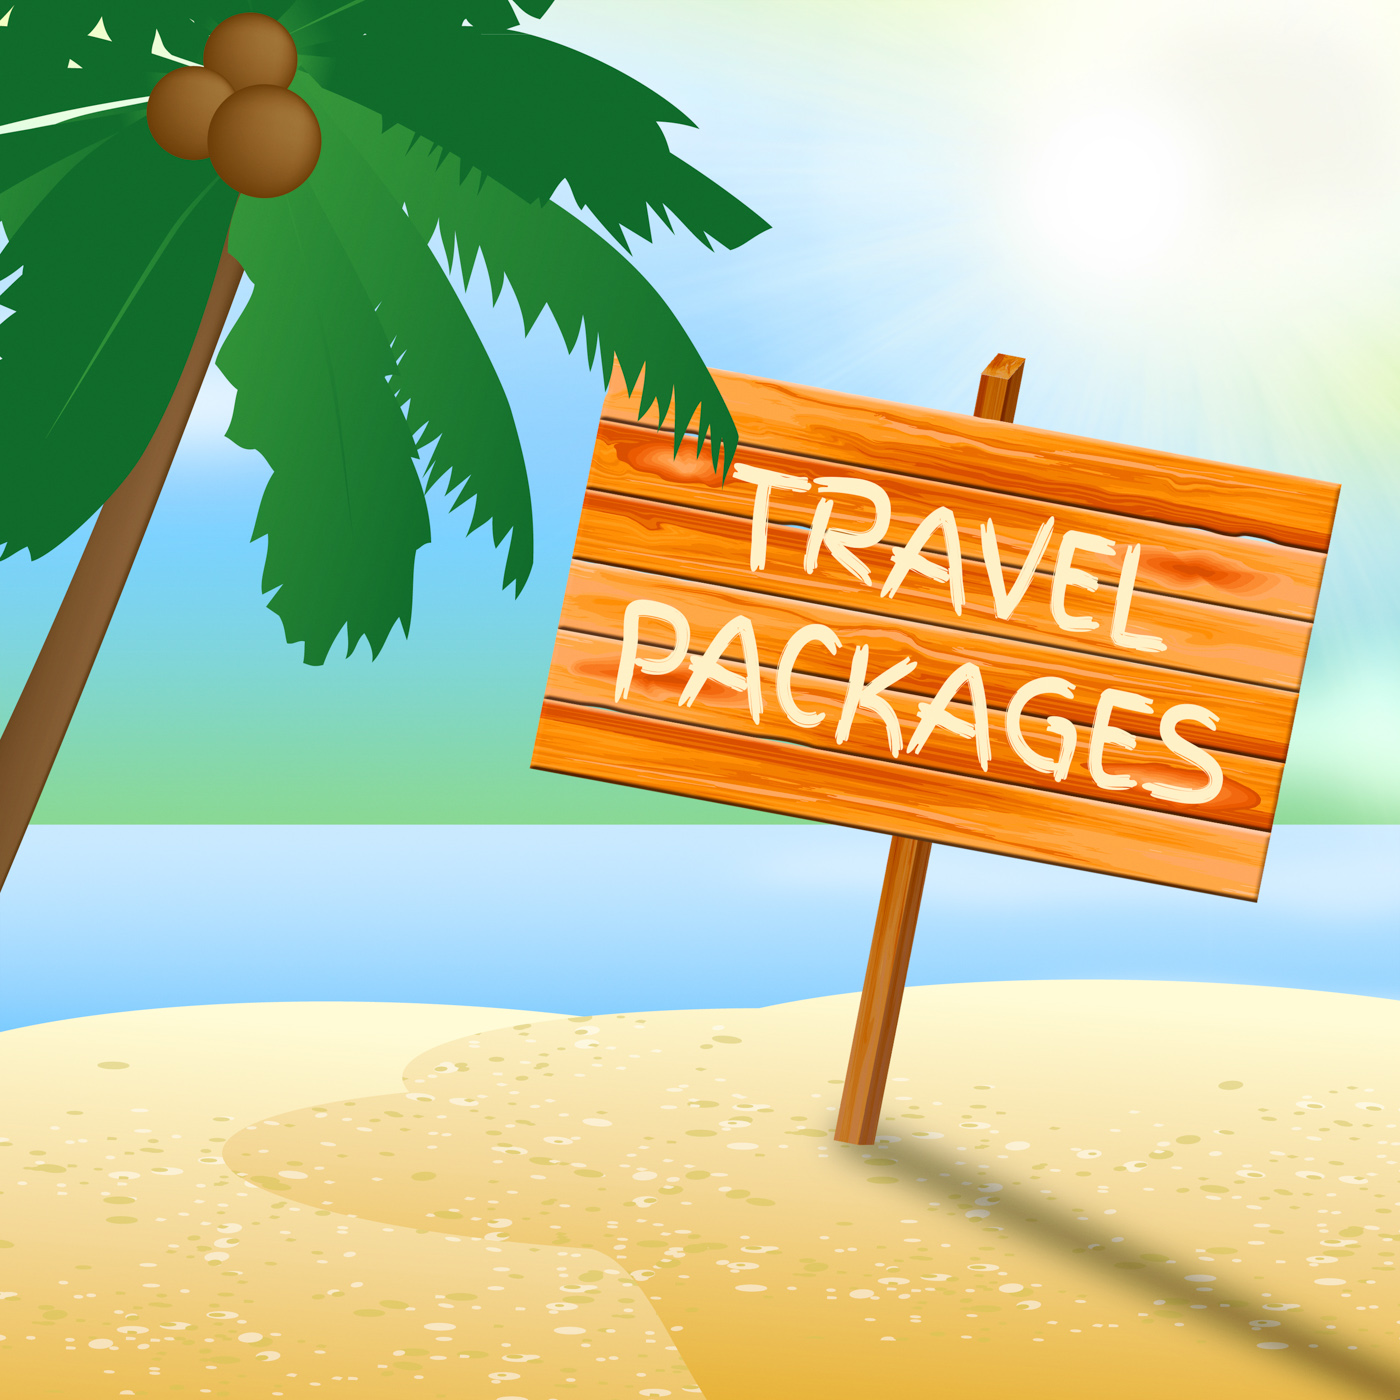 Travel packages indicates go on leave and arranged photo